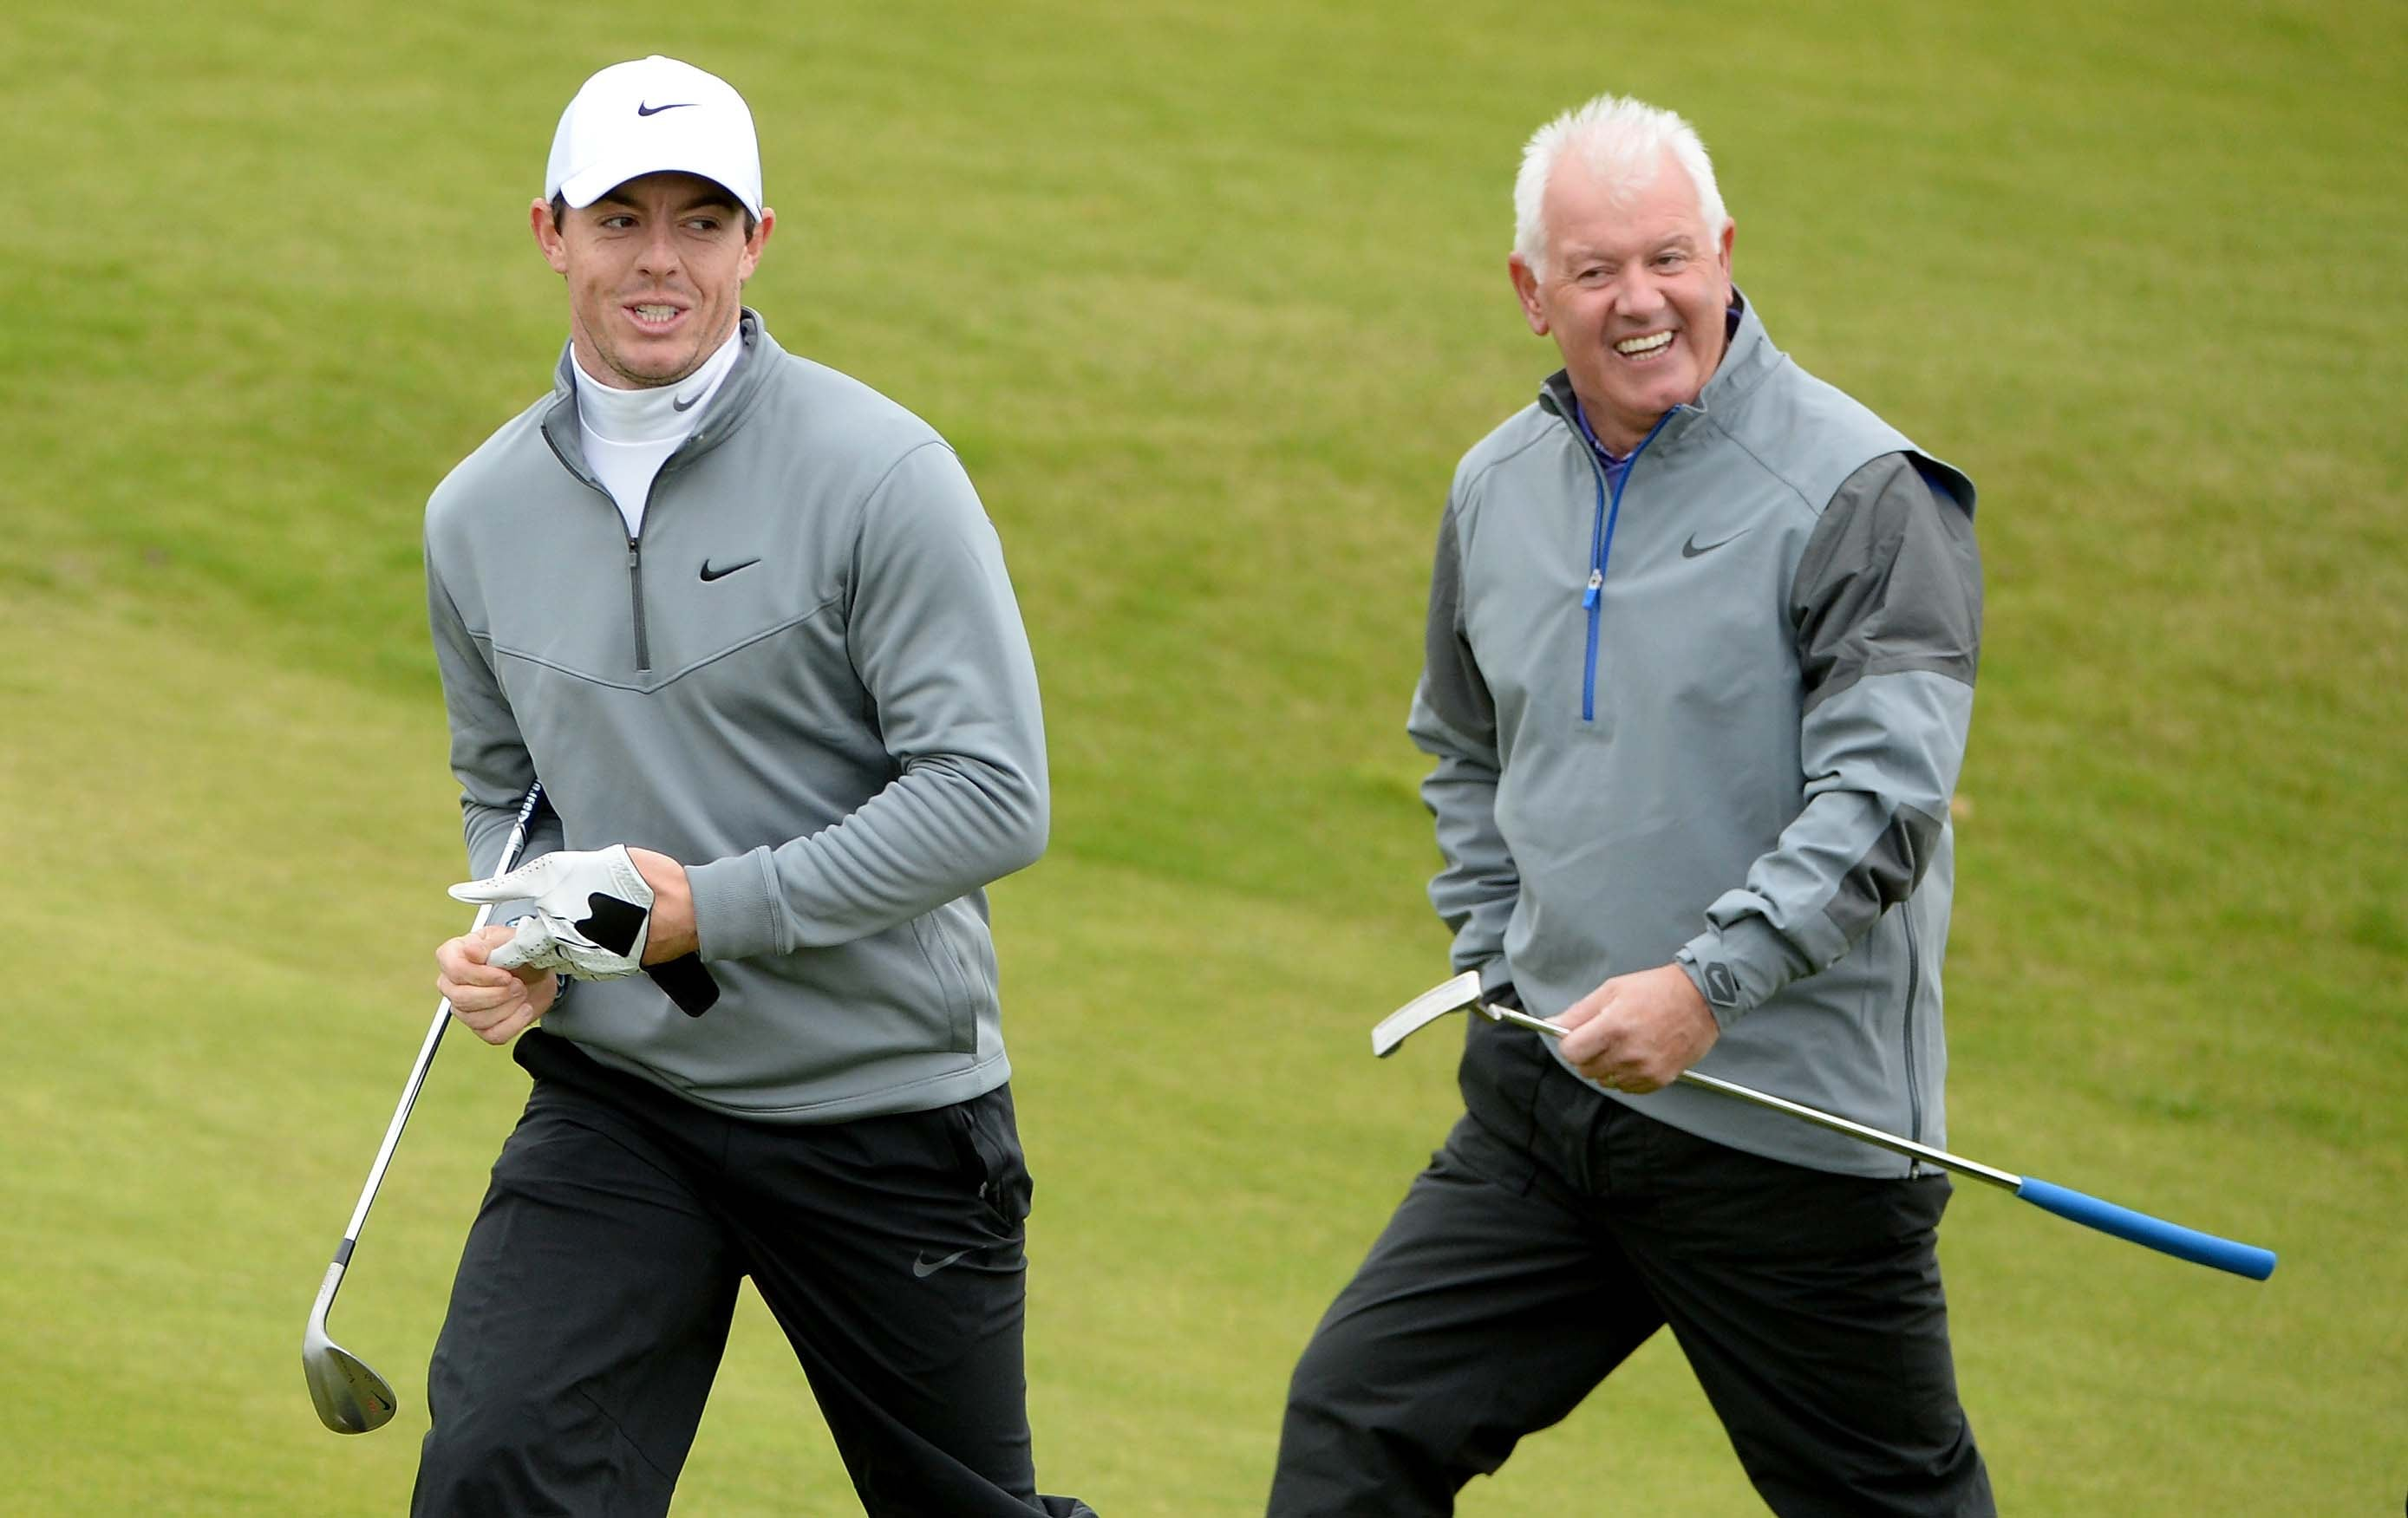 Rory McIlroy's father betting on him the win the British Open before he was 26 ... or